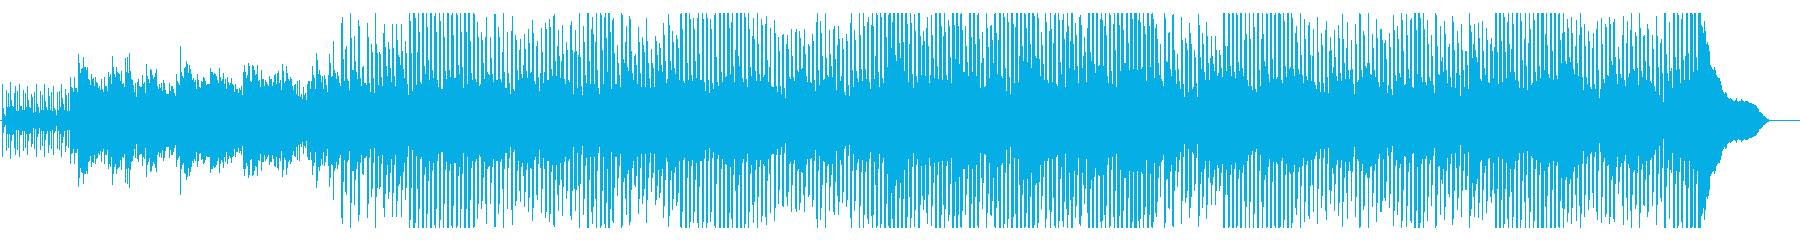 For corporate advertisements and company information with a calm atmosphere's reproduced waveform